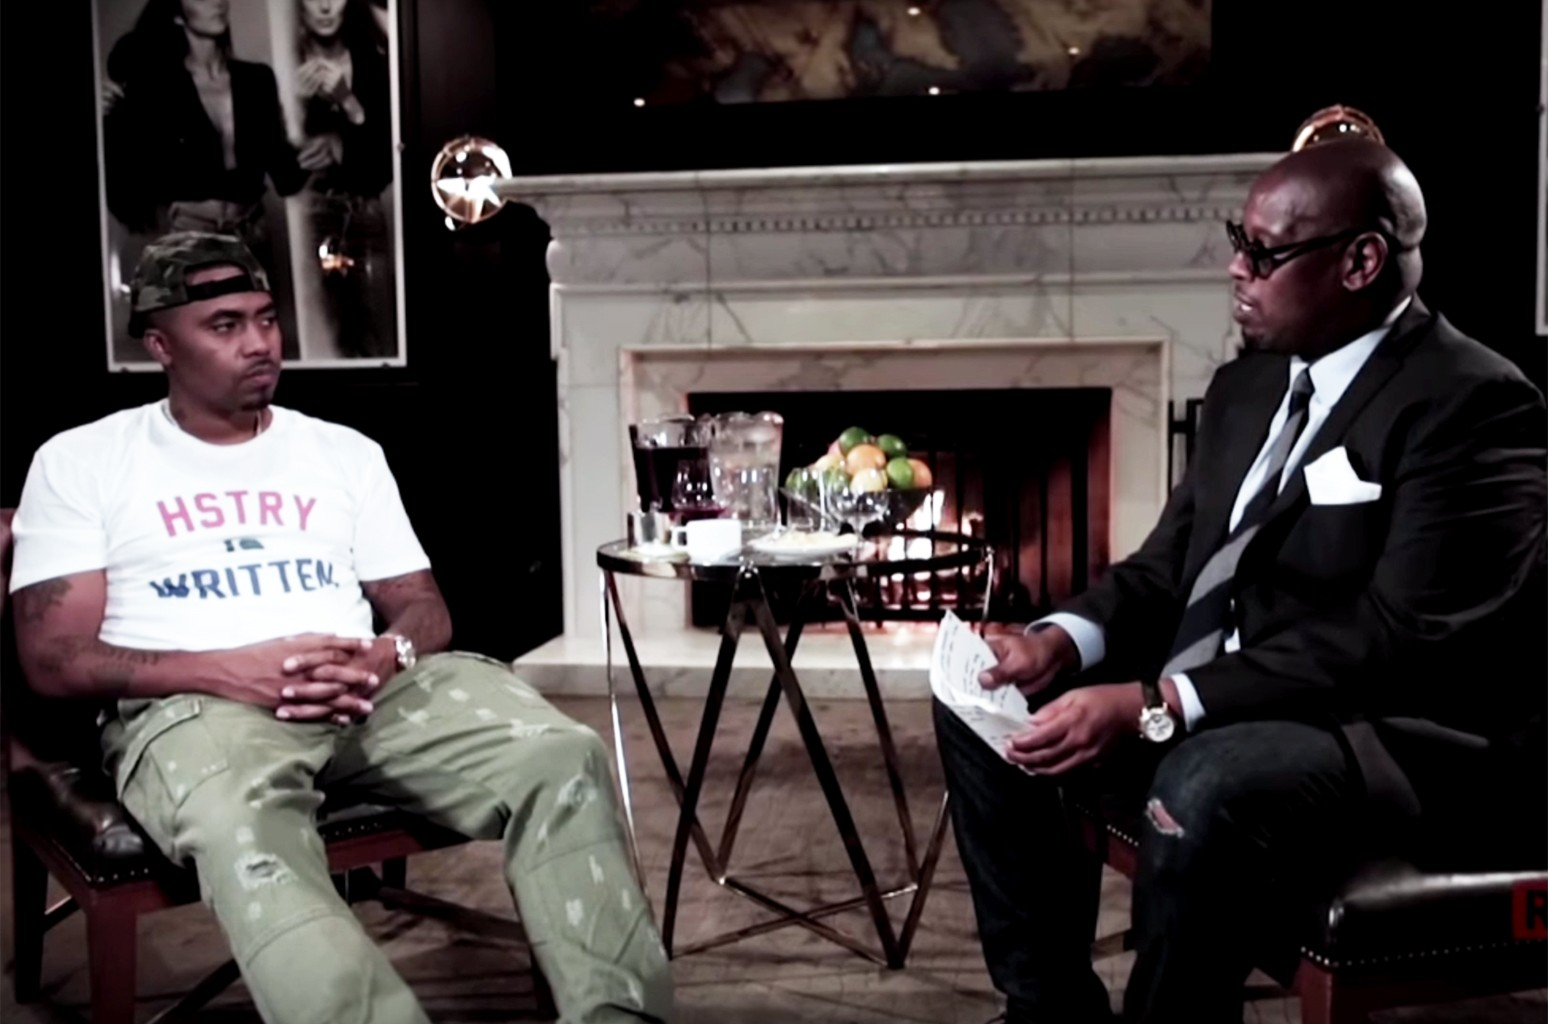 Nas during an interview with Revolt TV.